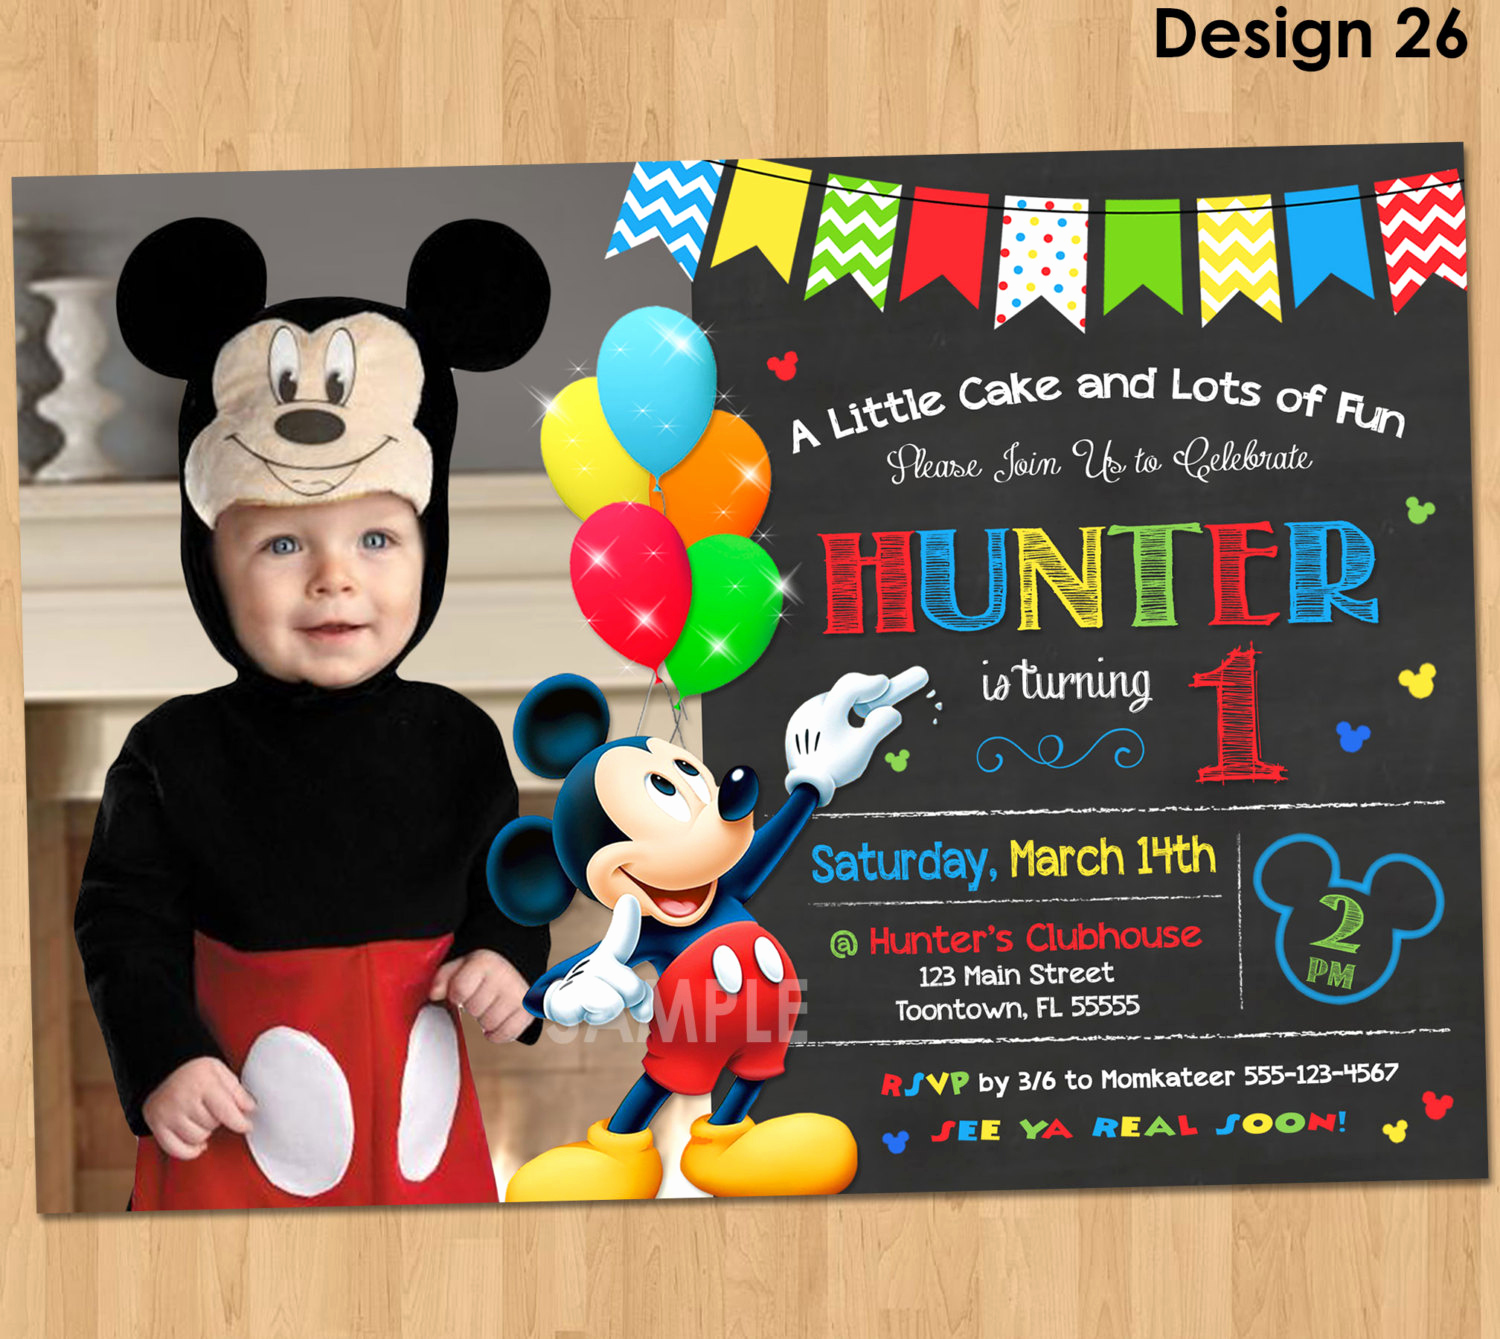 Mickey Mouse Club House Invitation Unique Mickey Mouse Clubhouse Invitations for Special Birthday